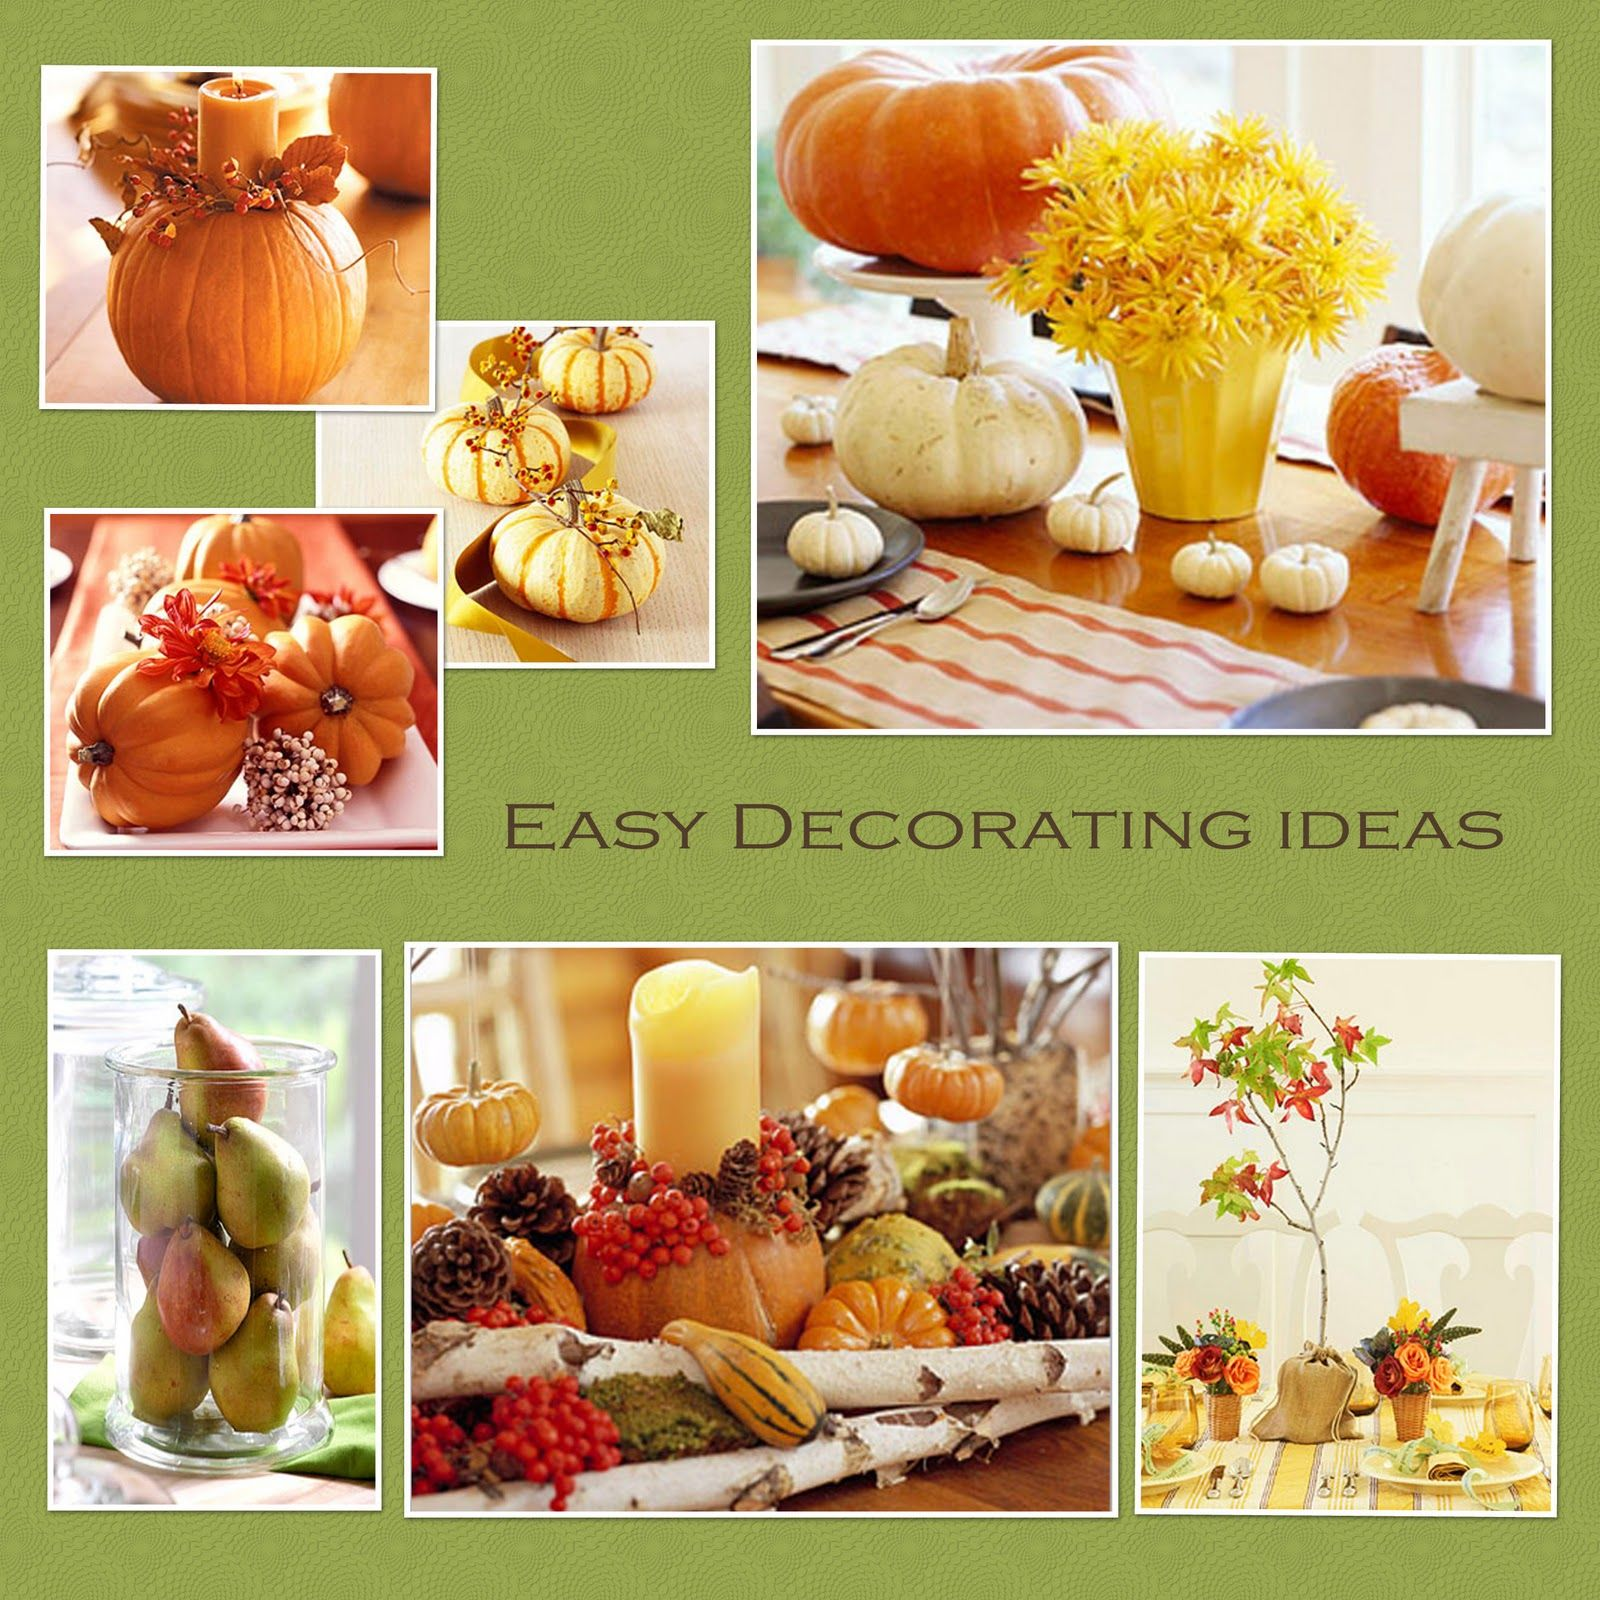 Decoration ideas for thanksgiving party - Decoration Ideas  sc 1 st  Pinterest & Decoration ideas for thanksgiving party - Decoration Ideas | Harvest ...